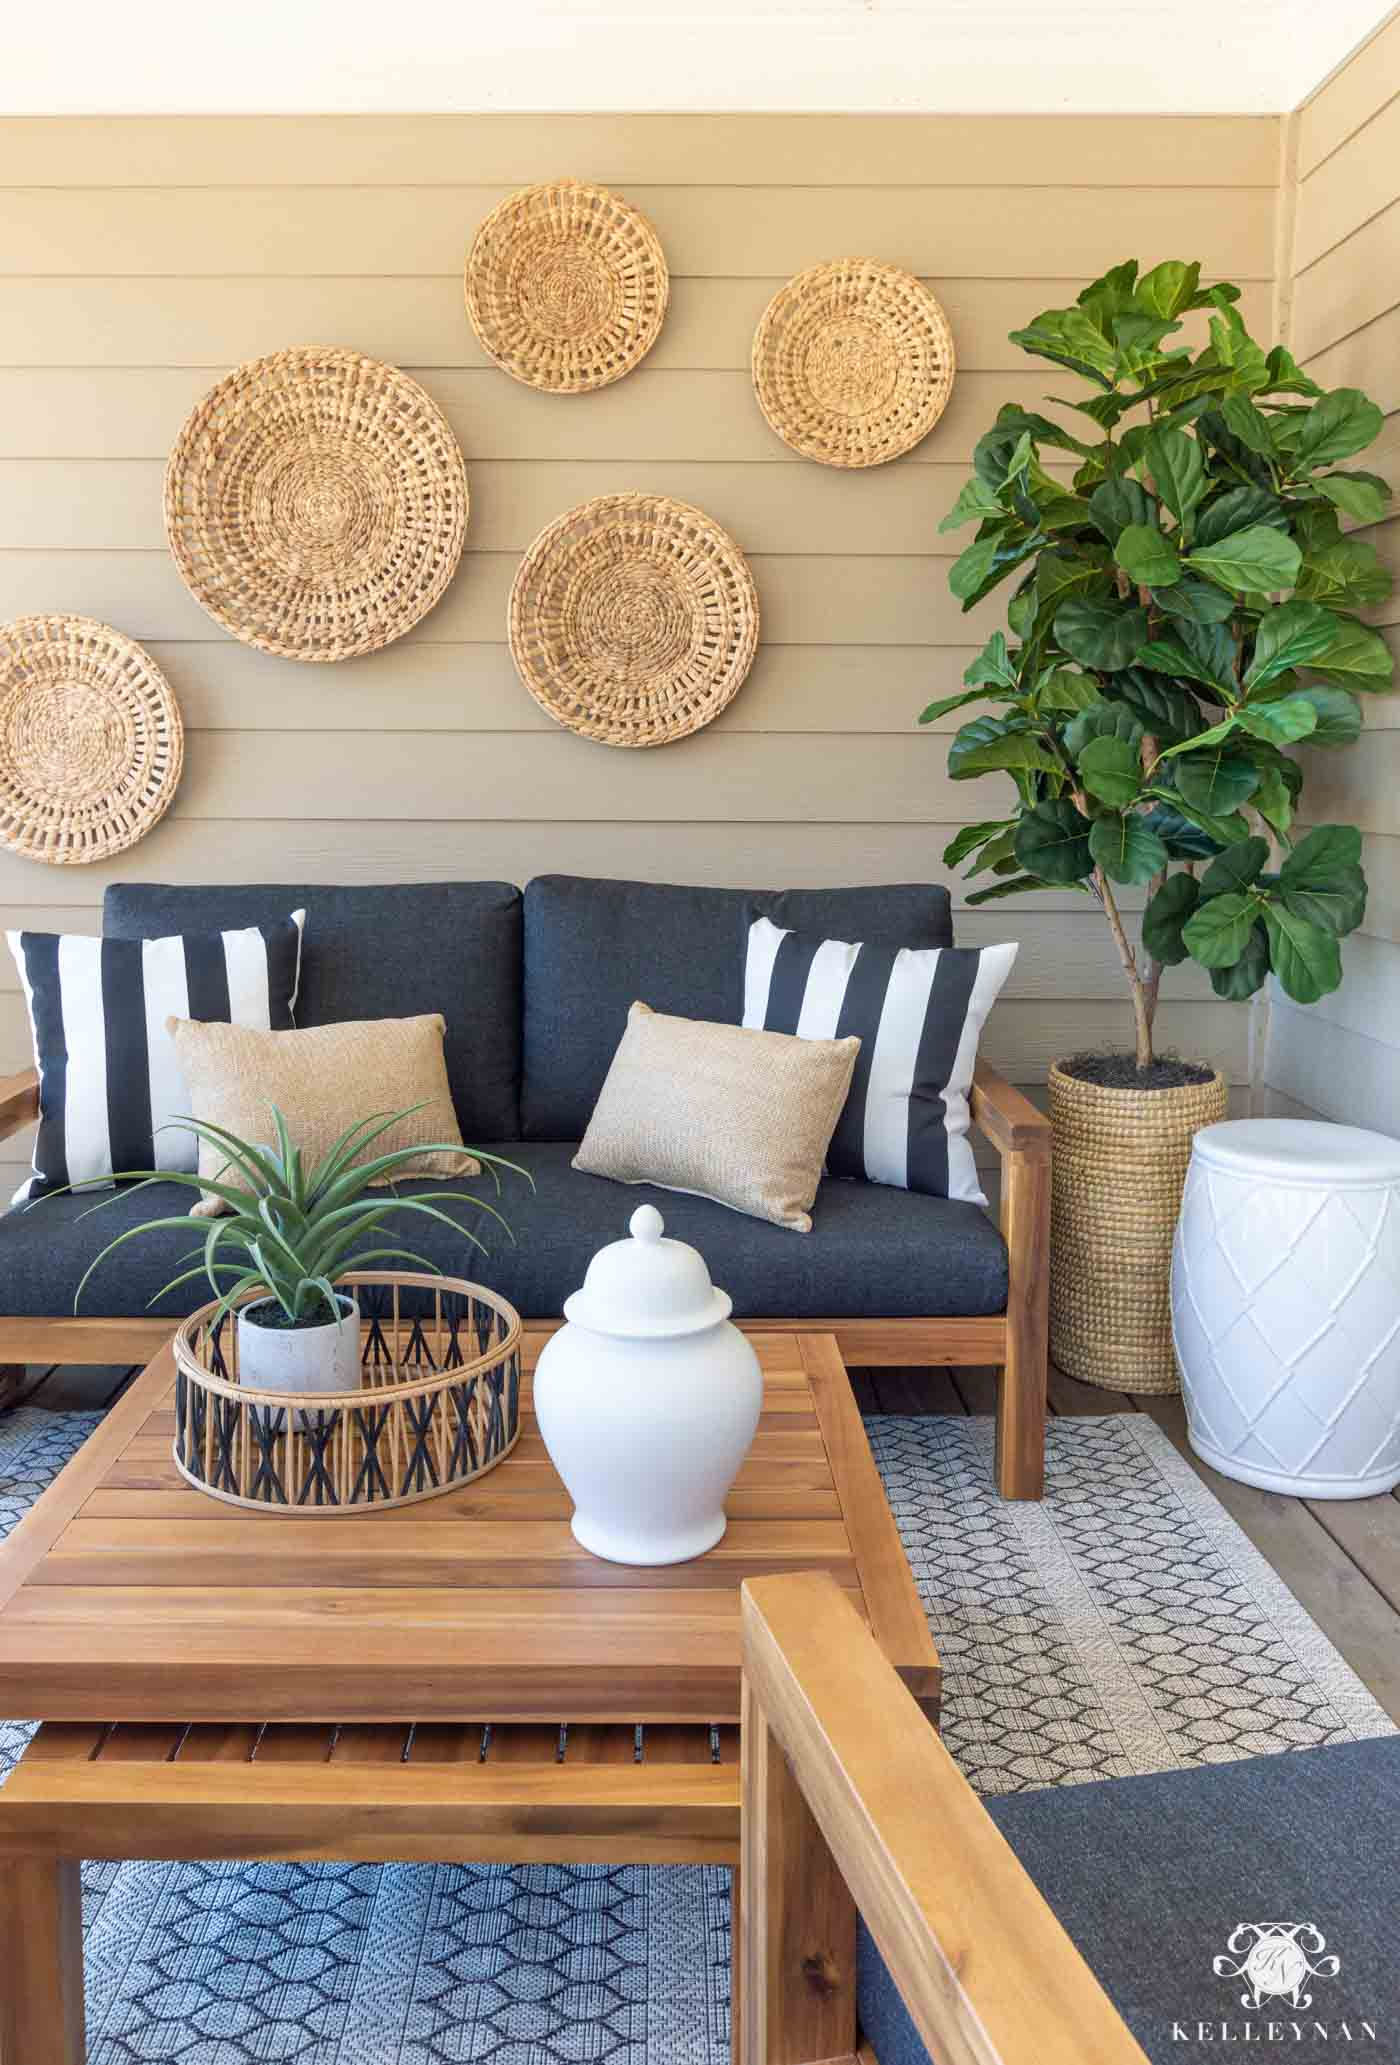 Make Your Outdoor Living Space Cozy on a Budget